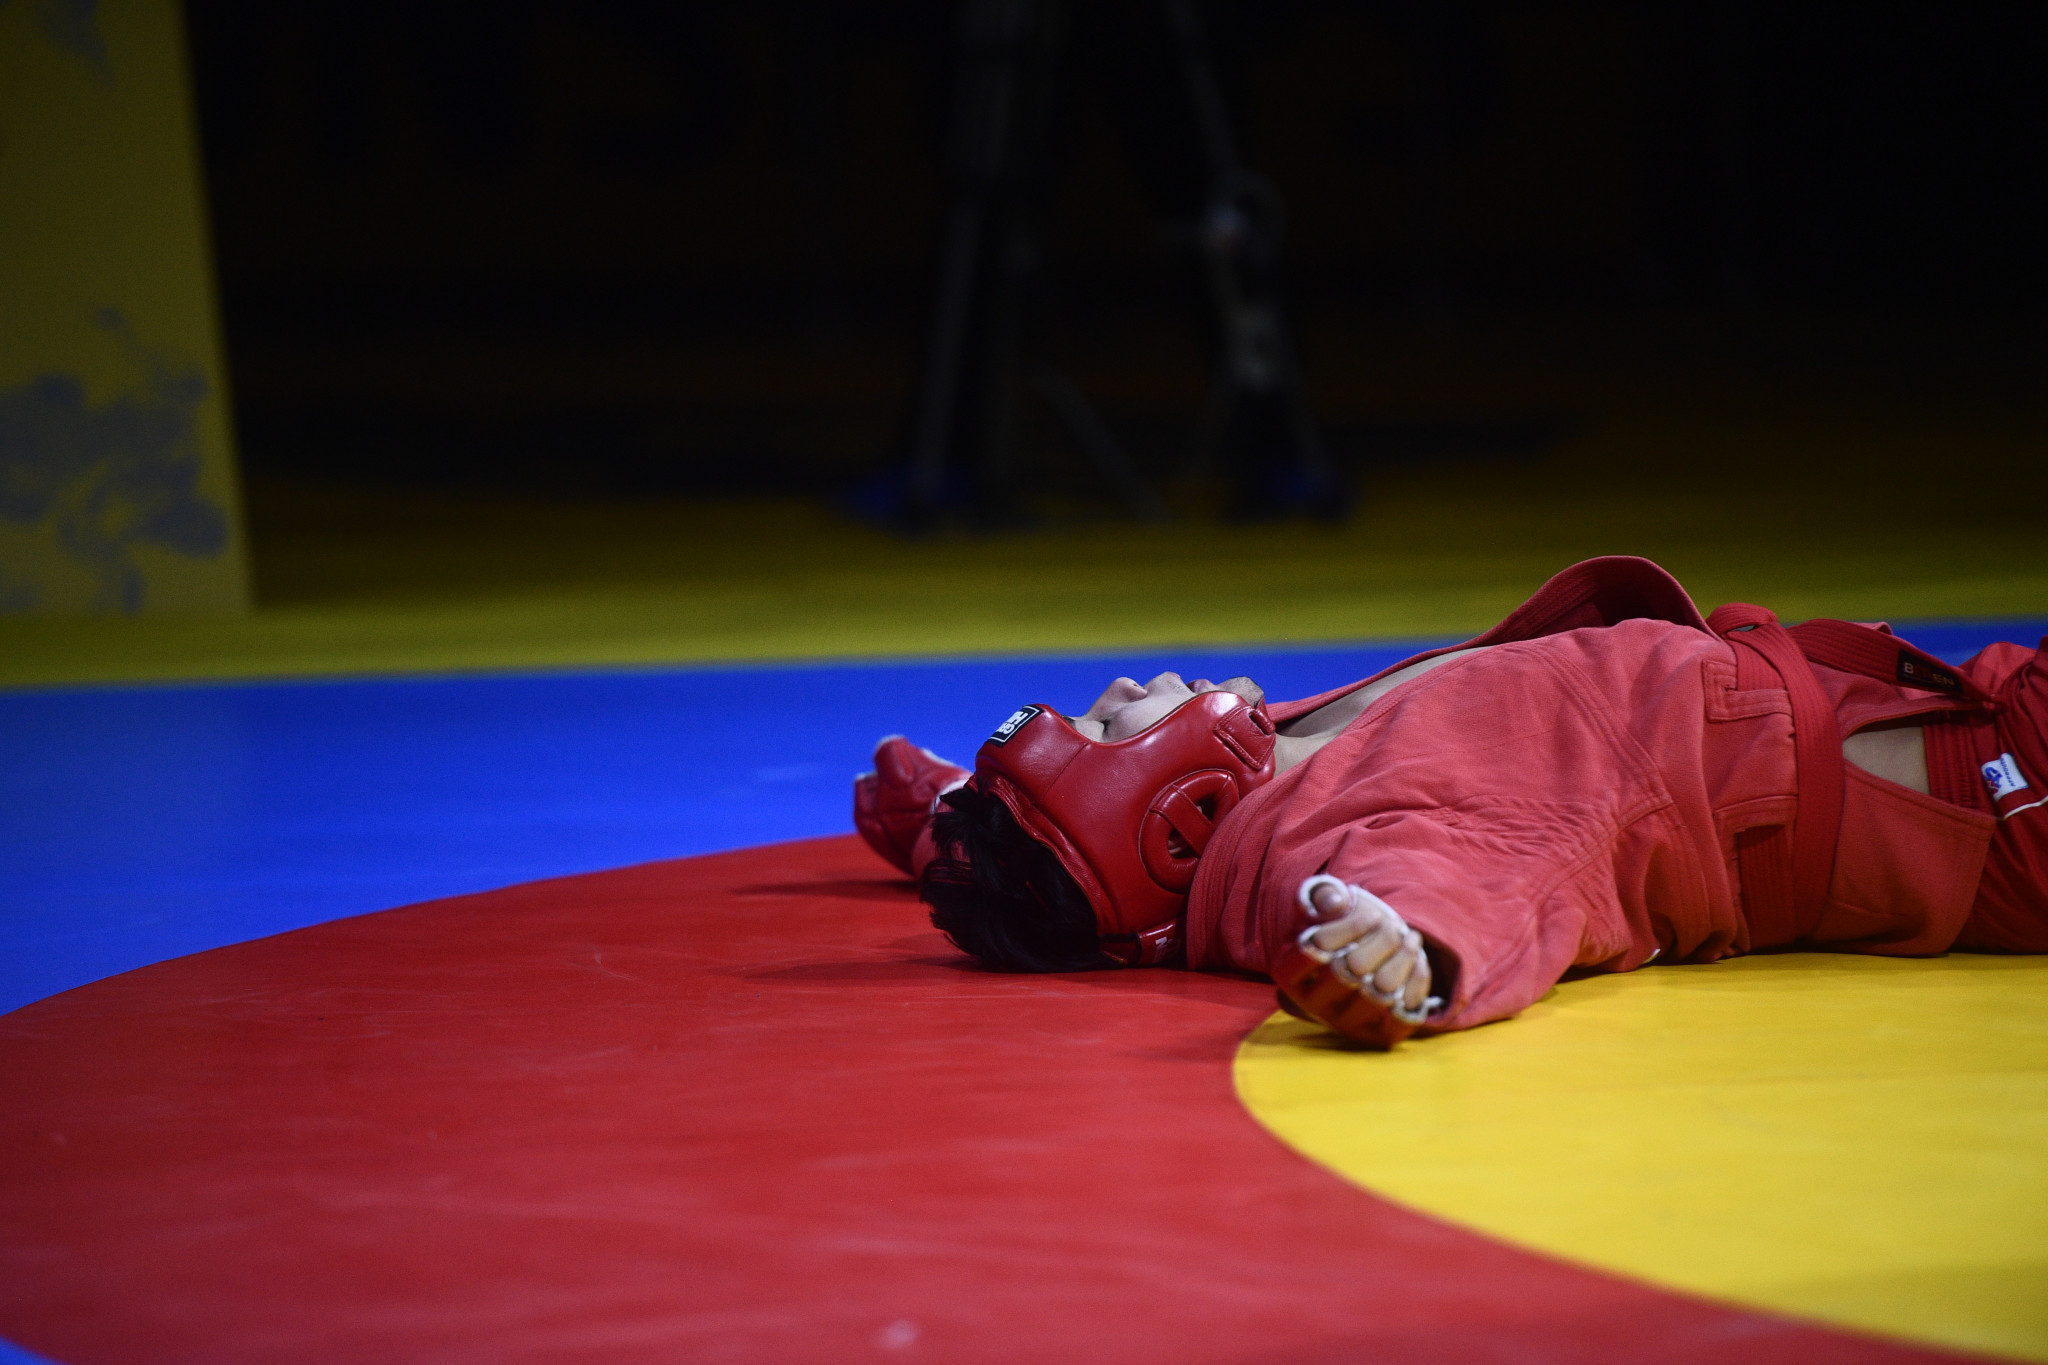 Combat sambo proved tiring for some of the competitors ©FIAS